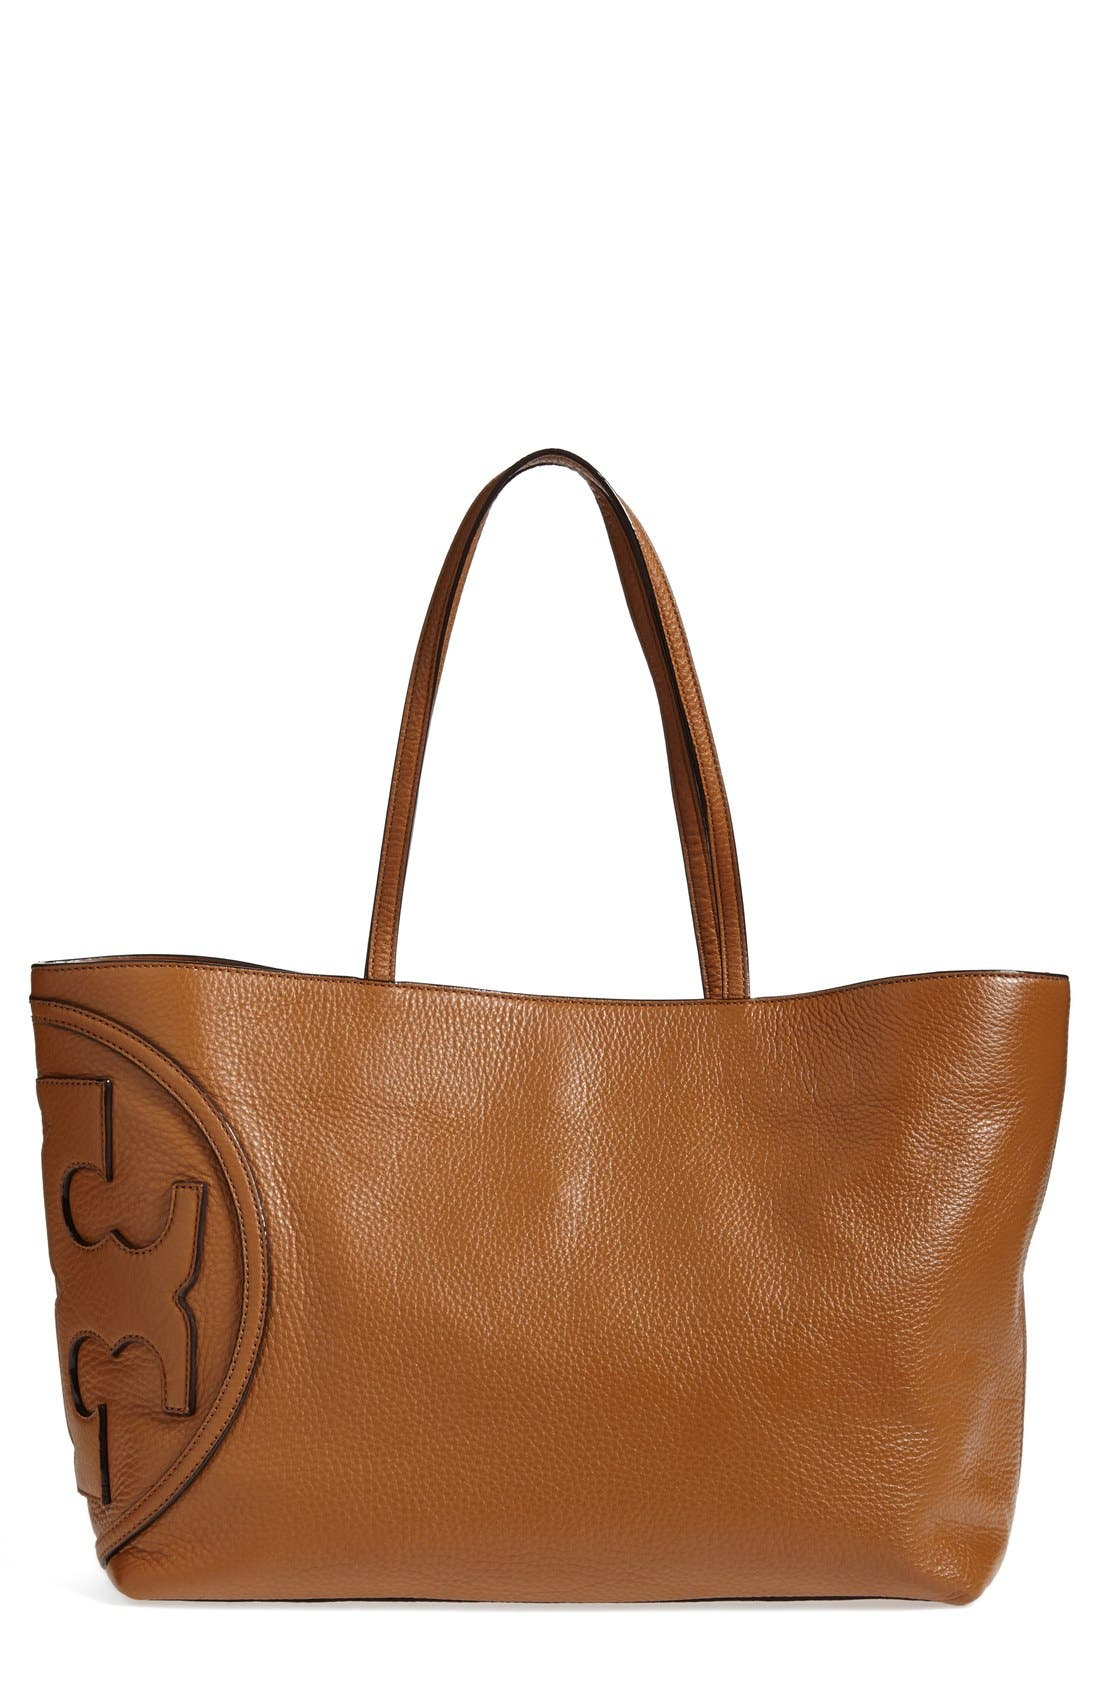 Alternate Image 1 Selected - Tory Burch 'All T' Leather Tote